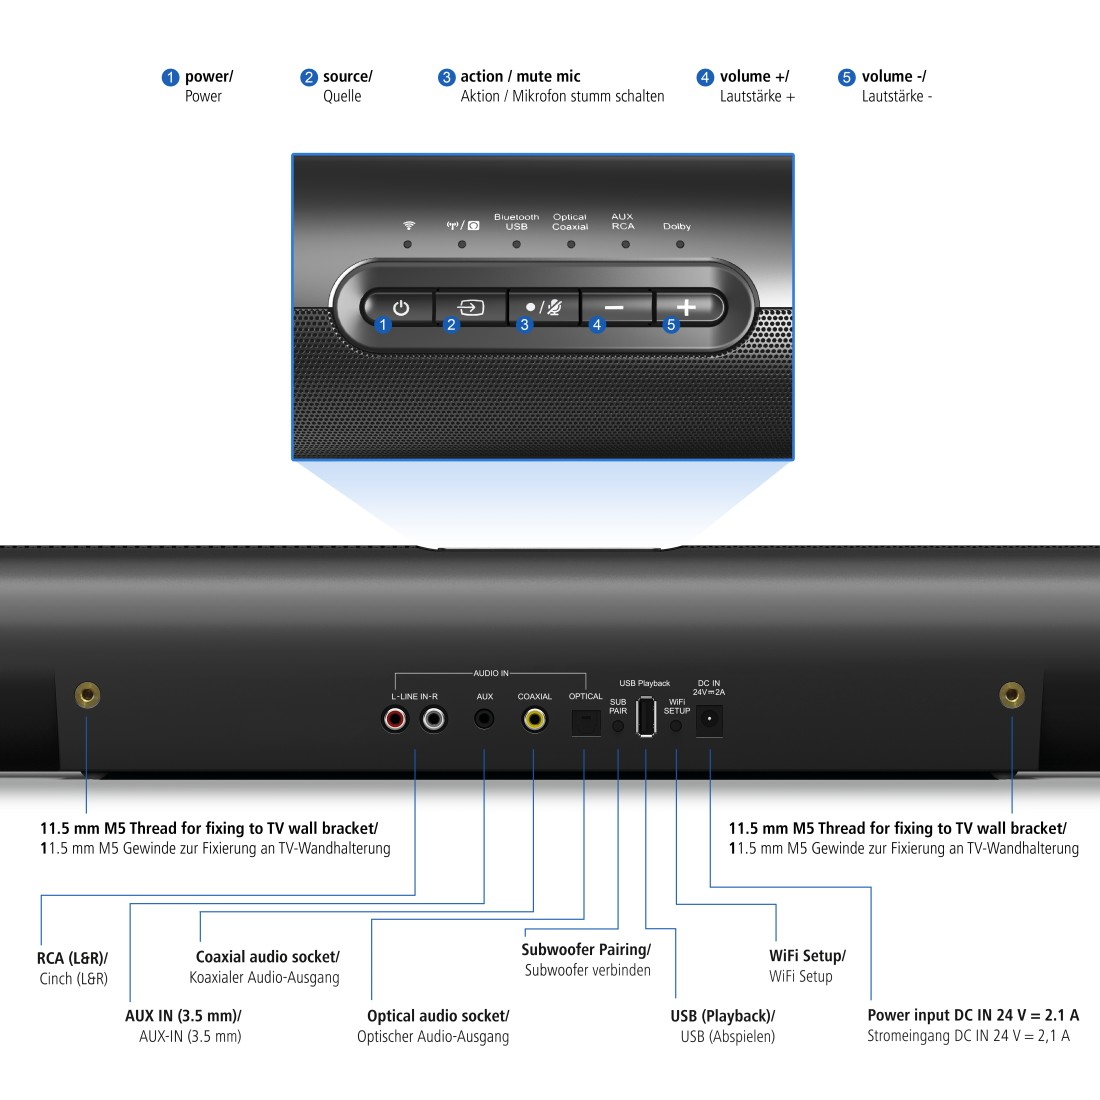 dex3 Druckfähiges Detail 3 - Hama, Smart-TV-Soundbar 2.1 SIRIUM4000ABT, Wireless Subwoofer/Alexa/Bluetooth